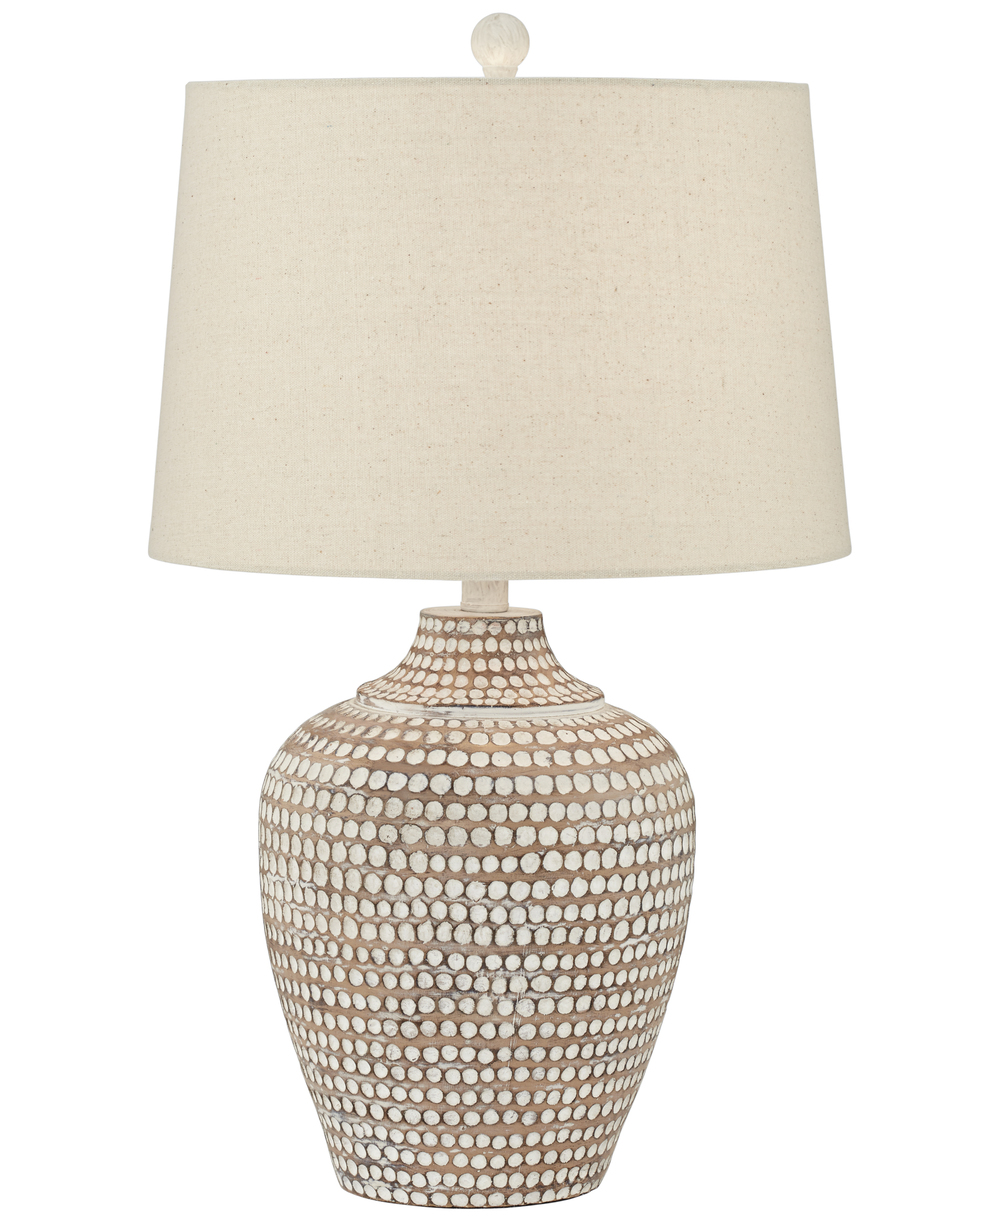 Pacific Coast Lighting - Resin Hammered Lamp